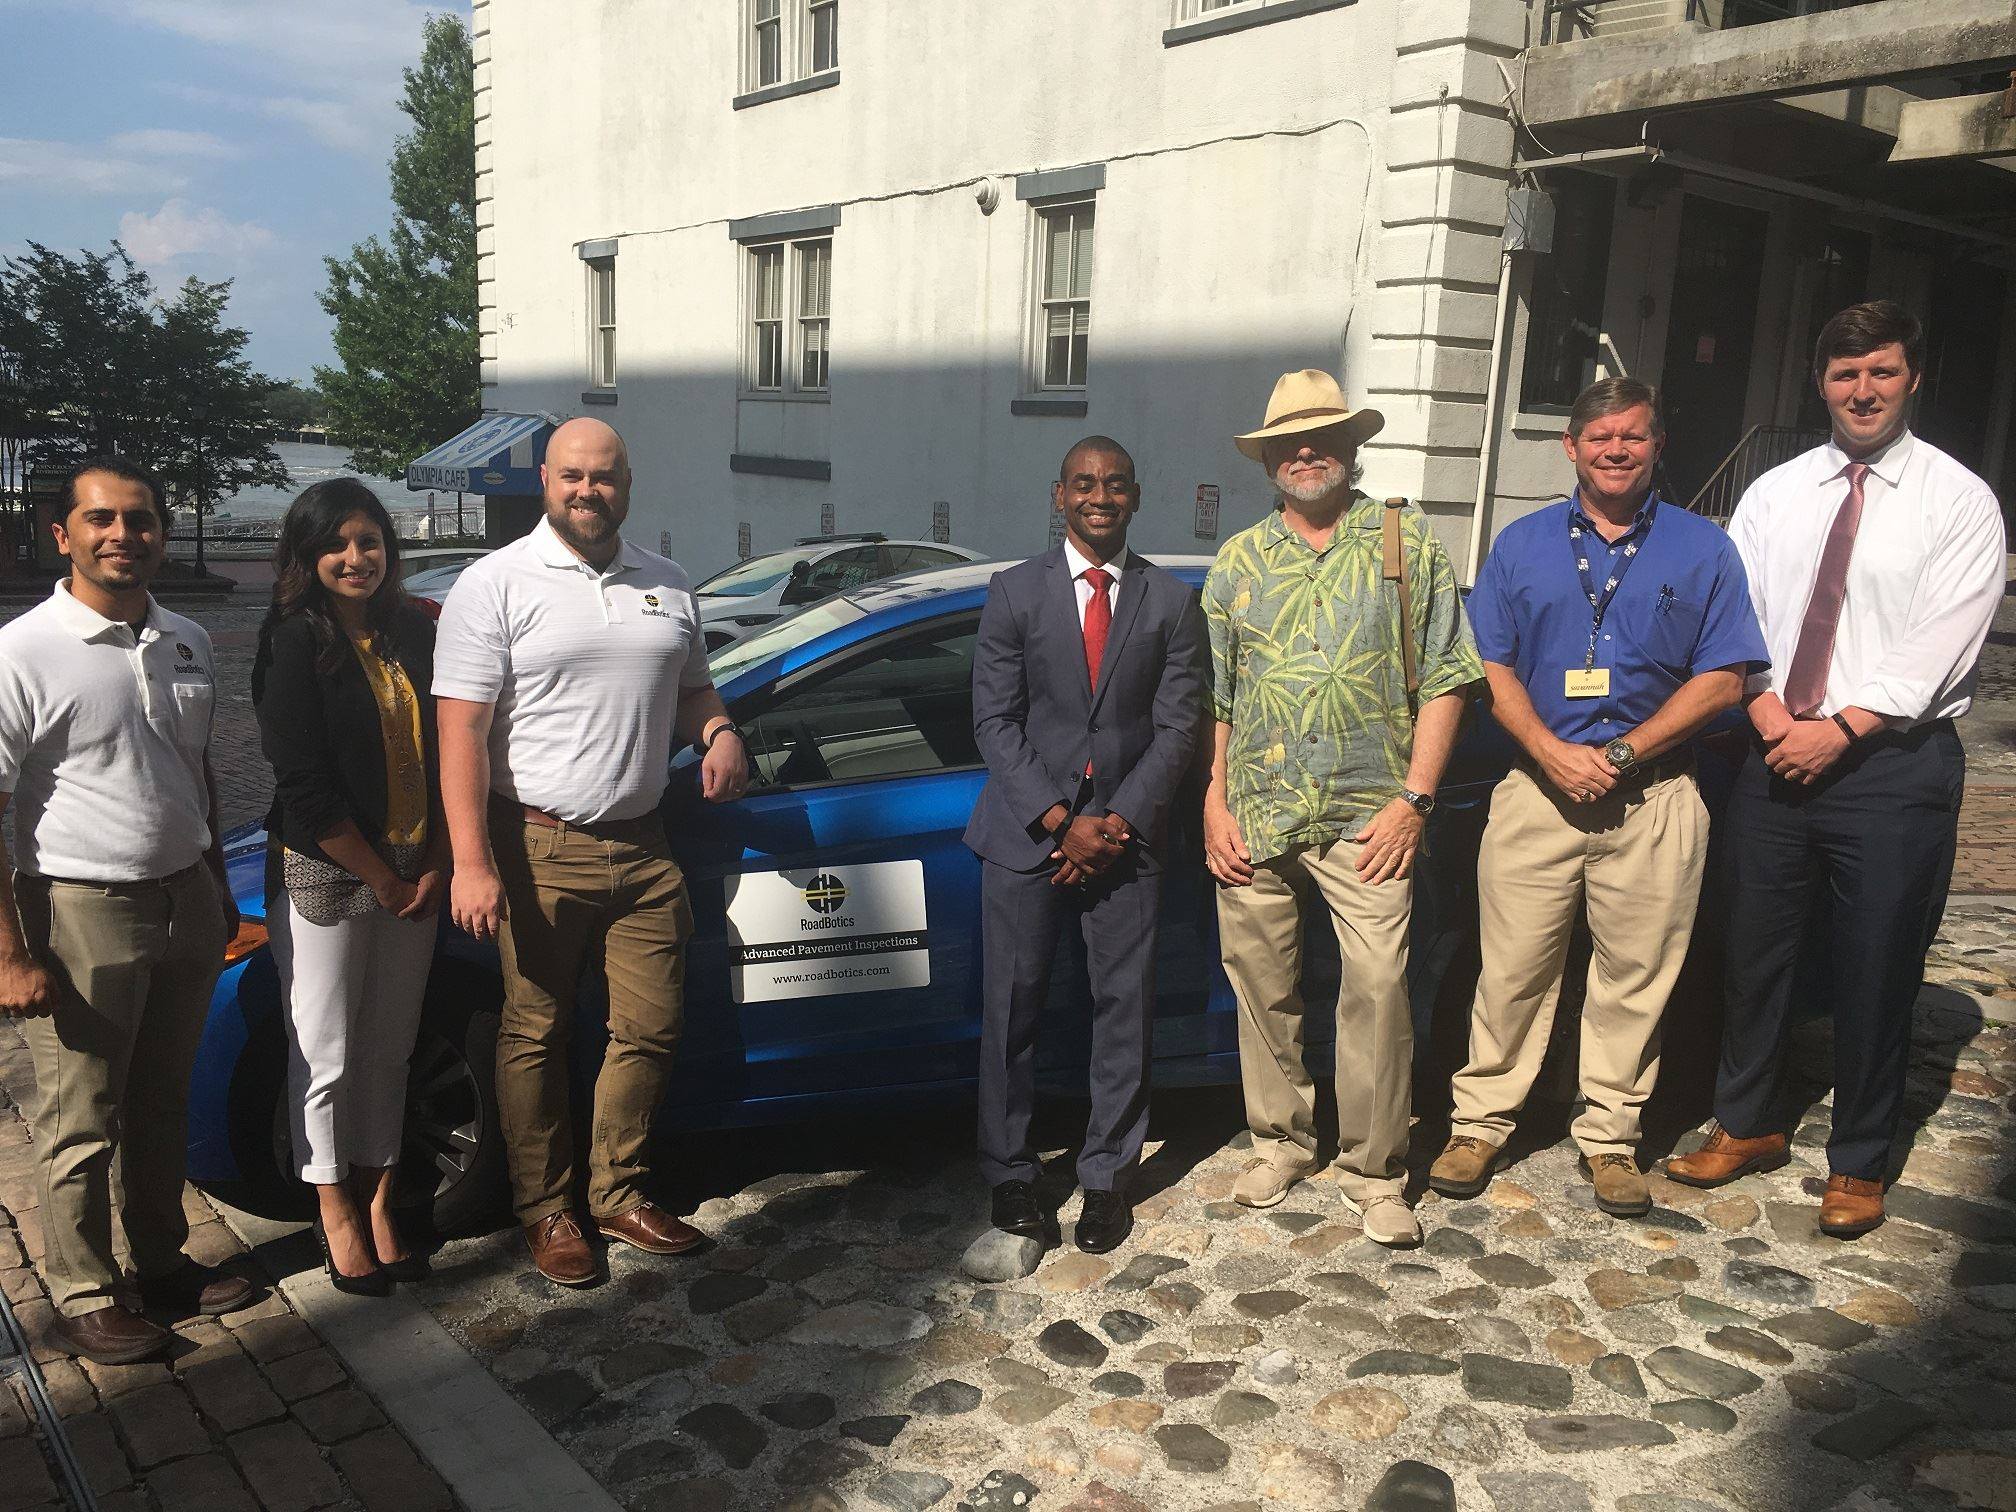 City of Savannah staff, Alderman Durrence and Roadbotics